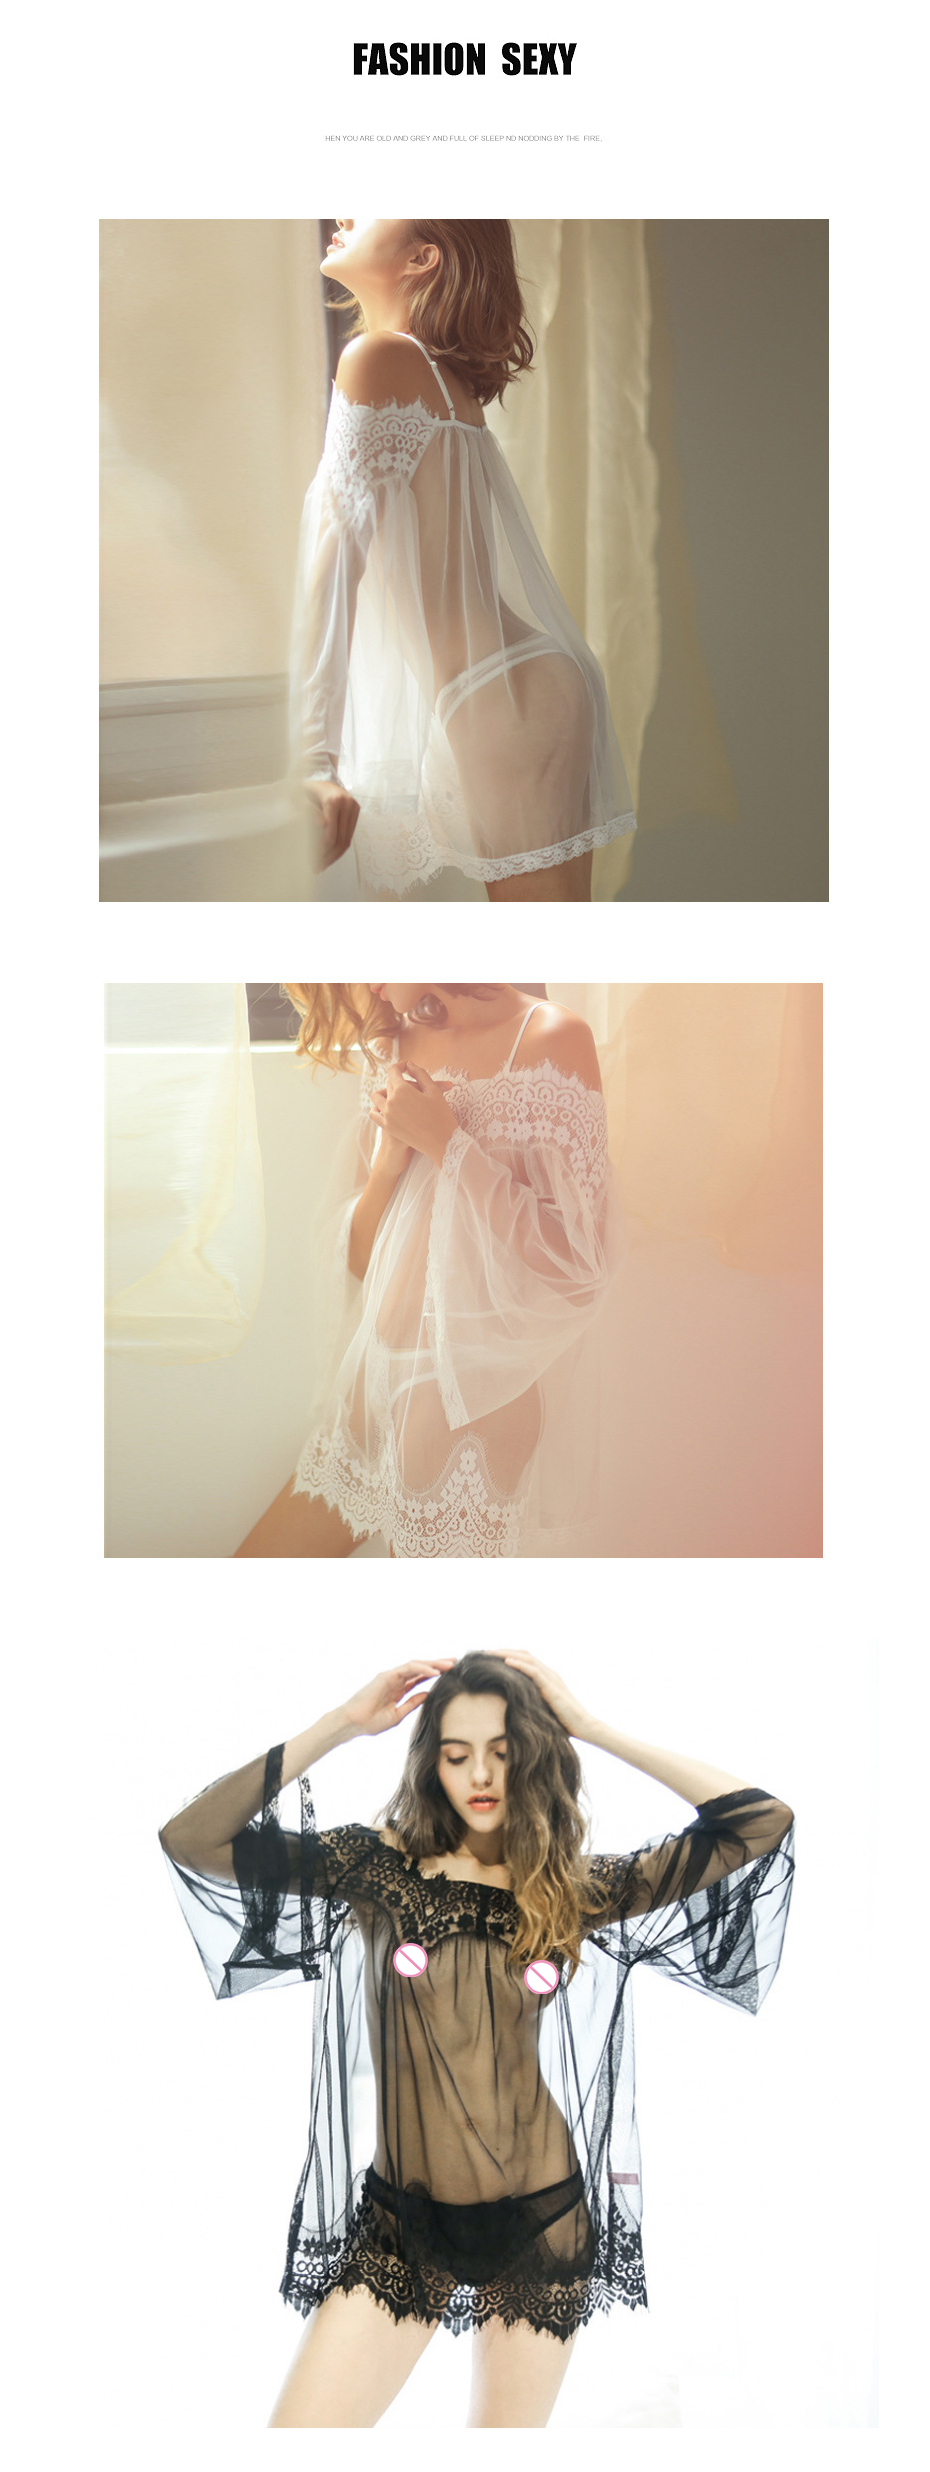 1_02  Ladies's Attractive Lingerie Perspective Lace Unique Attire Lingerie+thongs S-XXXL Attractive Babydoll Chemise Backless Sling Nightdress Scorching HTB1H9YIaXqZBuNjt jqq6ymzpXai